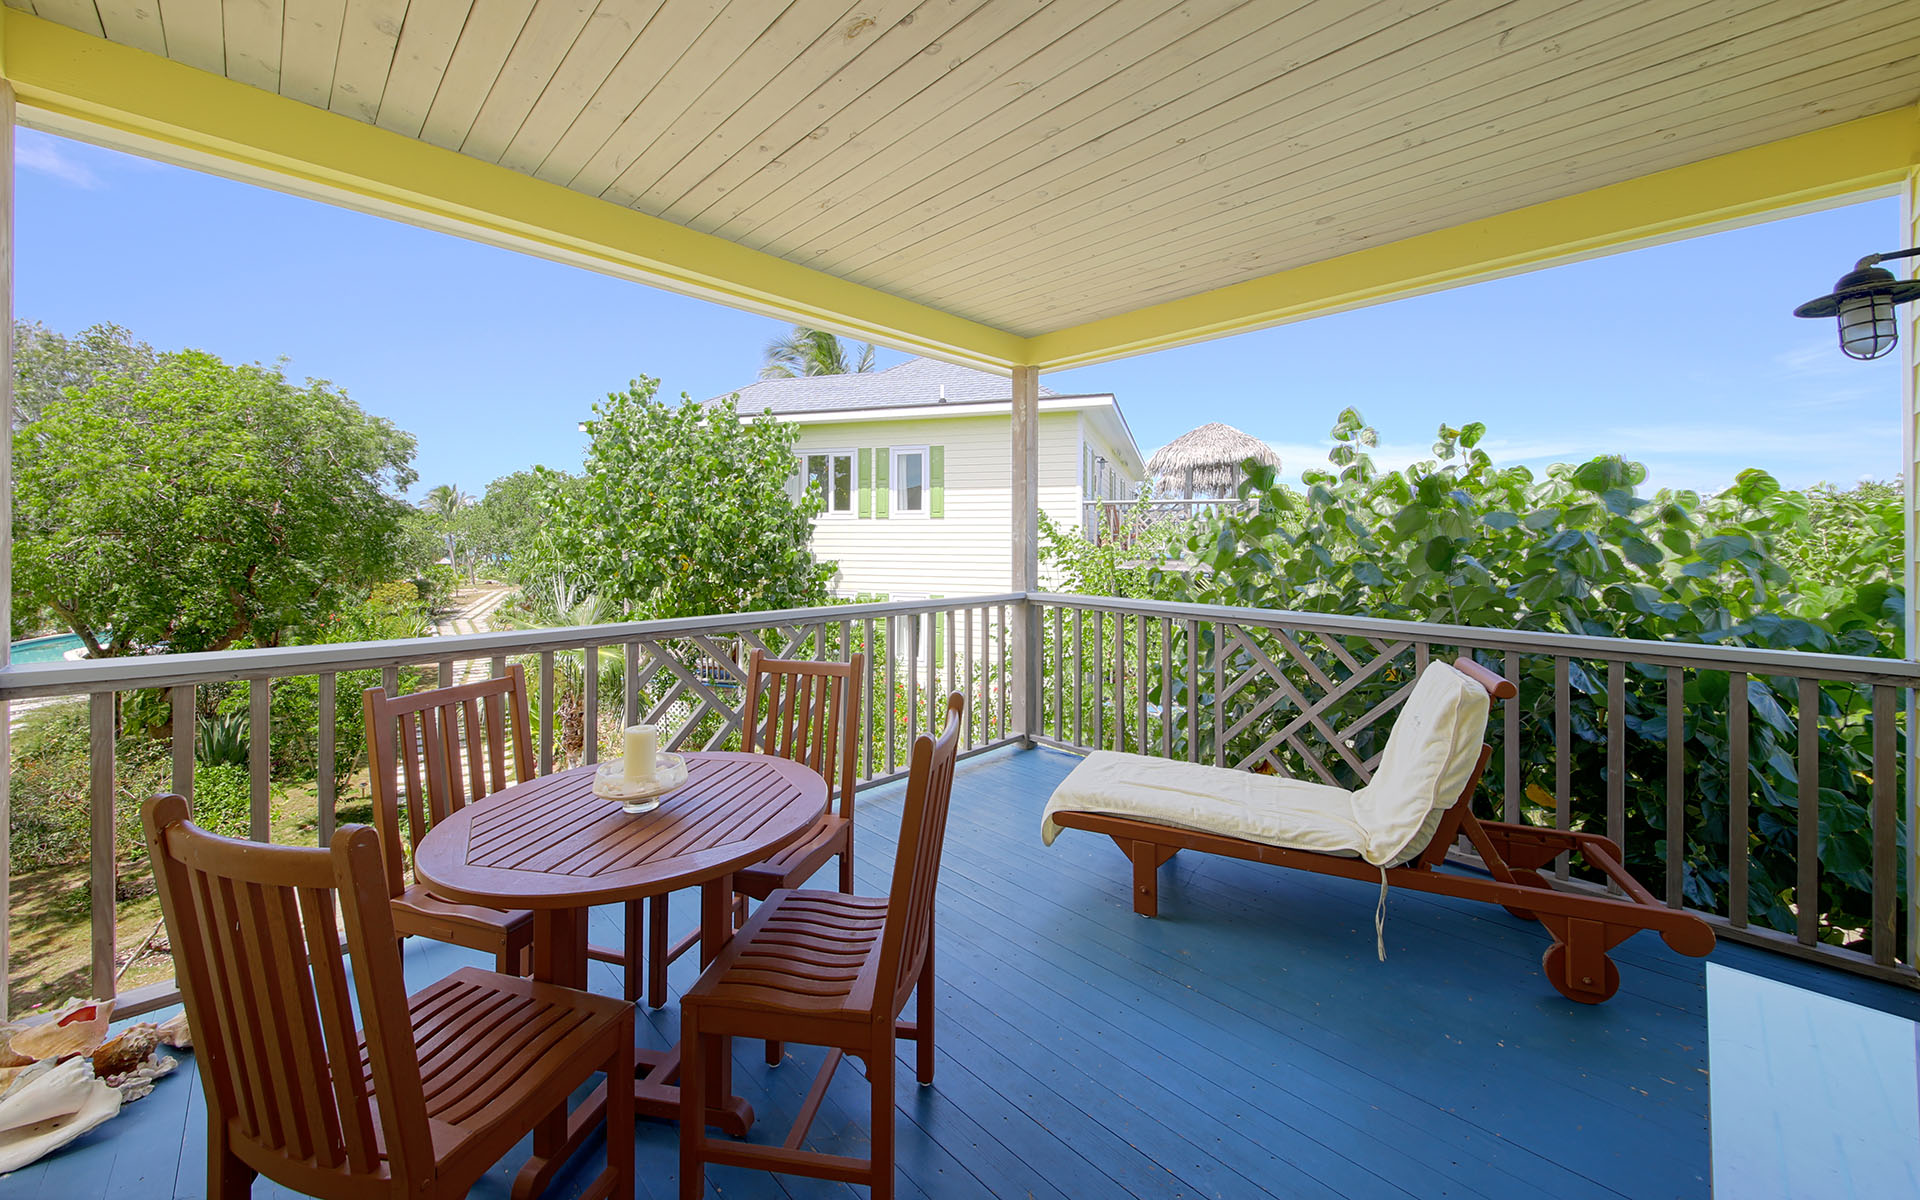 Co-op / Condo for Sale at 2 Bedroom Condo - Pineapple Fields, Governor's Harbour - MLS 31294 Governors Harbour, Eleuthera, Bahamas